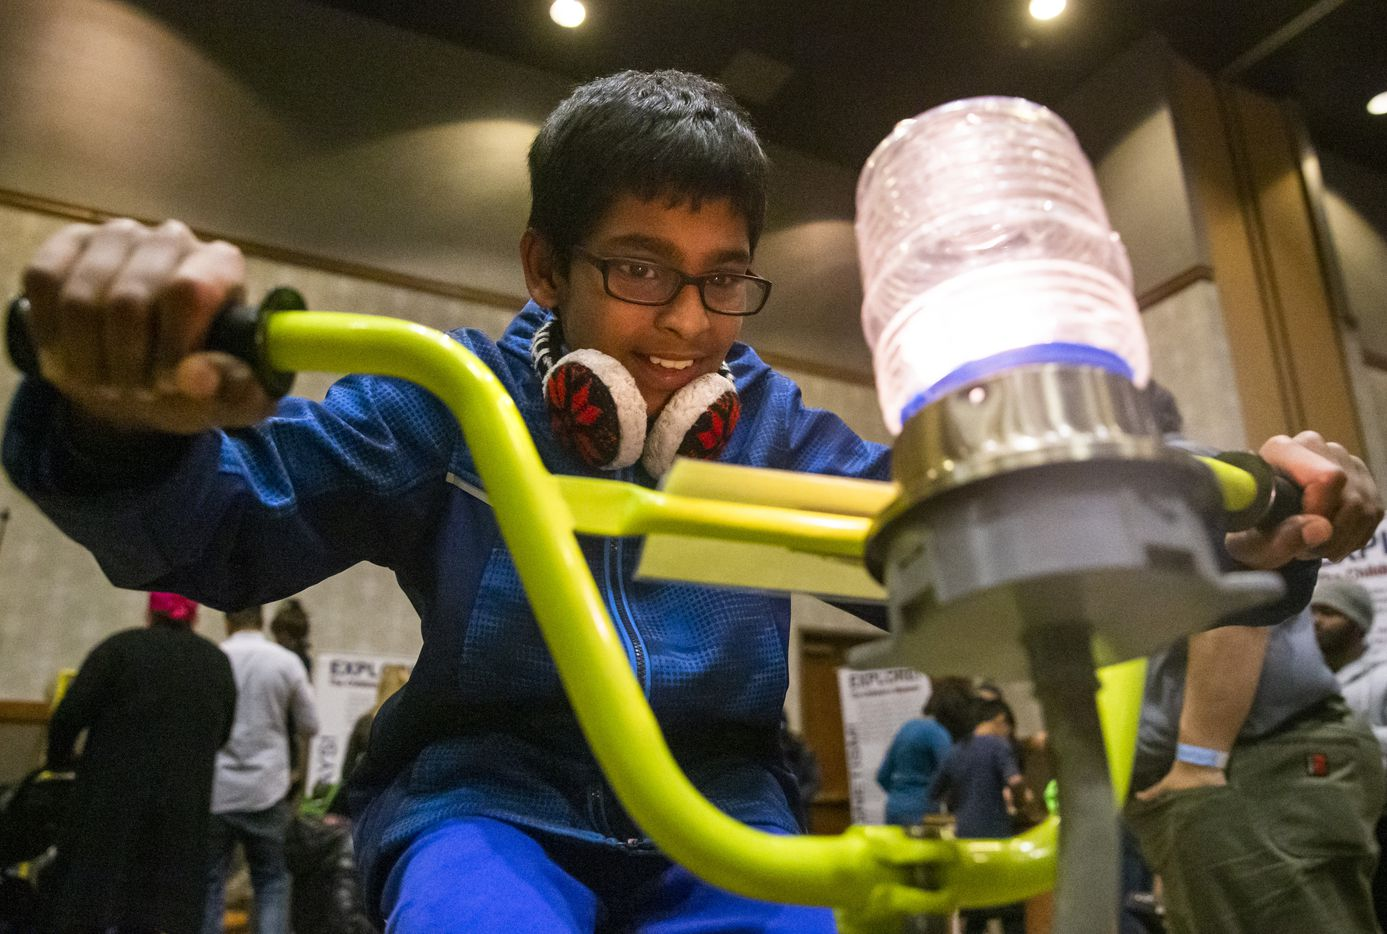 Charan Ashok, 10, from McKinney, Texas, pedals a bicycle to light up a lightbulb in the science exhibit section of the Day 1 Dallas festival held this year at the Embassy Suites Conference Center in Frisco, Texas, on Wednesday, Jan. 1, 2020. Day 1 Dallas is a kid-friendly New Year's Day festival that features rock-climbing, arts and crafts, bounce houses, and a fireworks show.